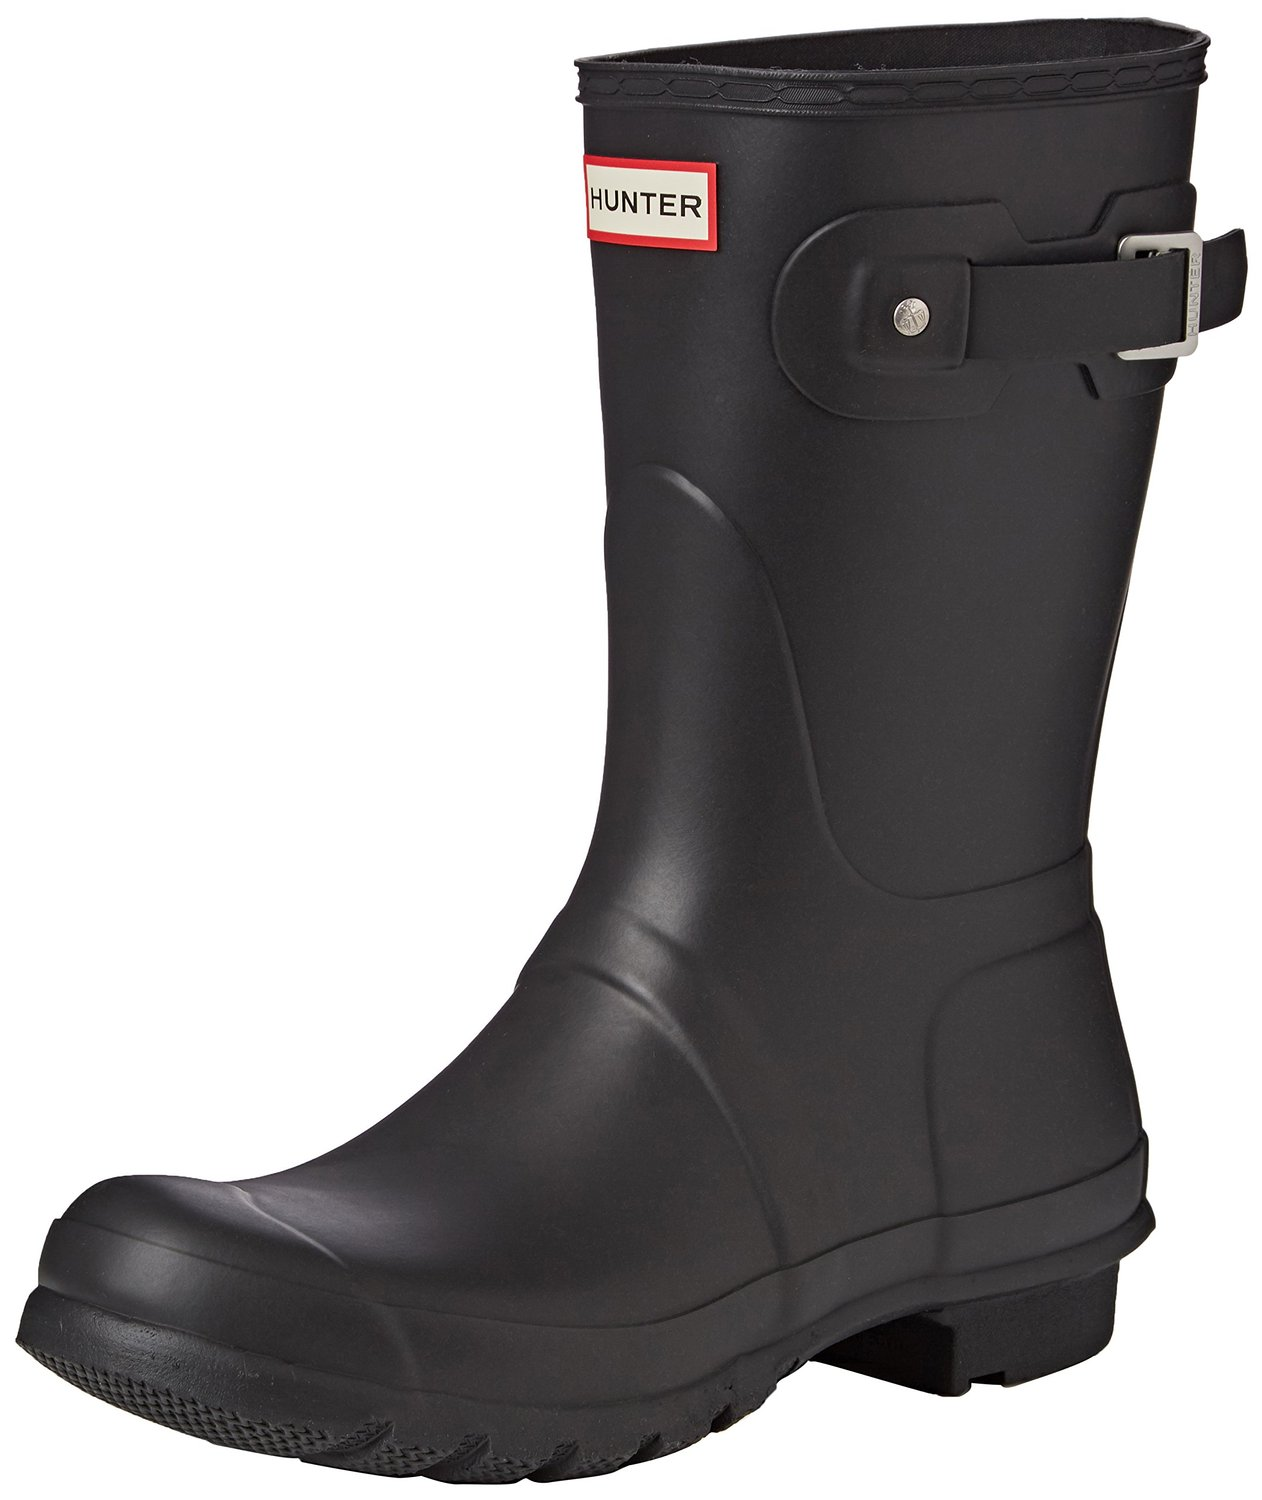 Amazon.com | Hunter Women's Original Short Rain Boot, Black Matte, 7 B(M) US | Boots